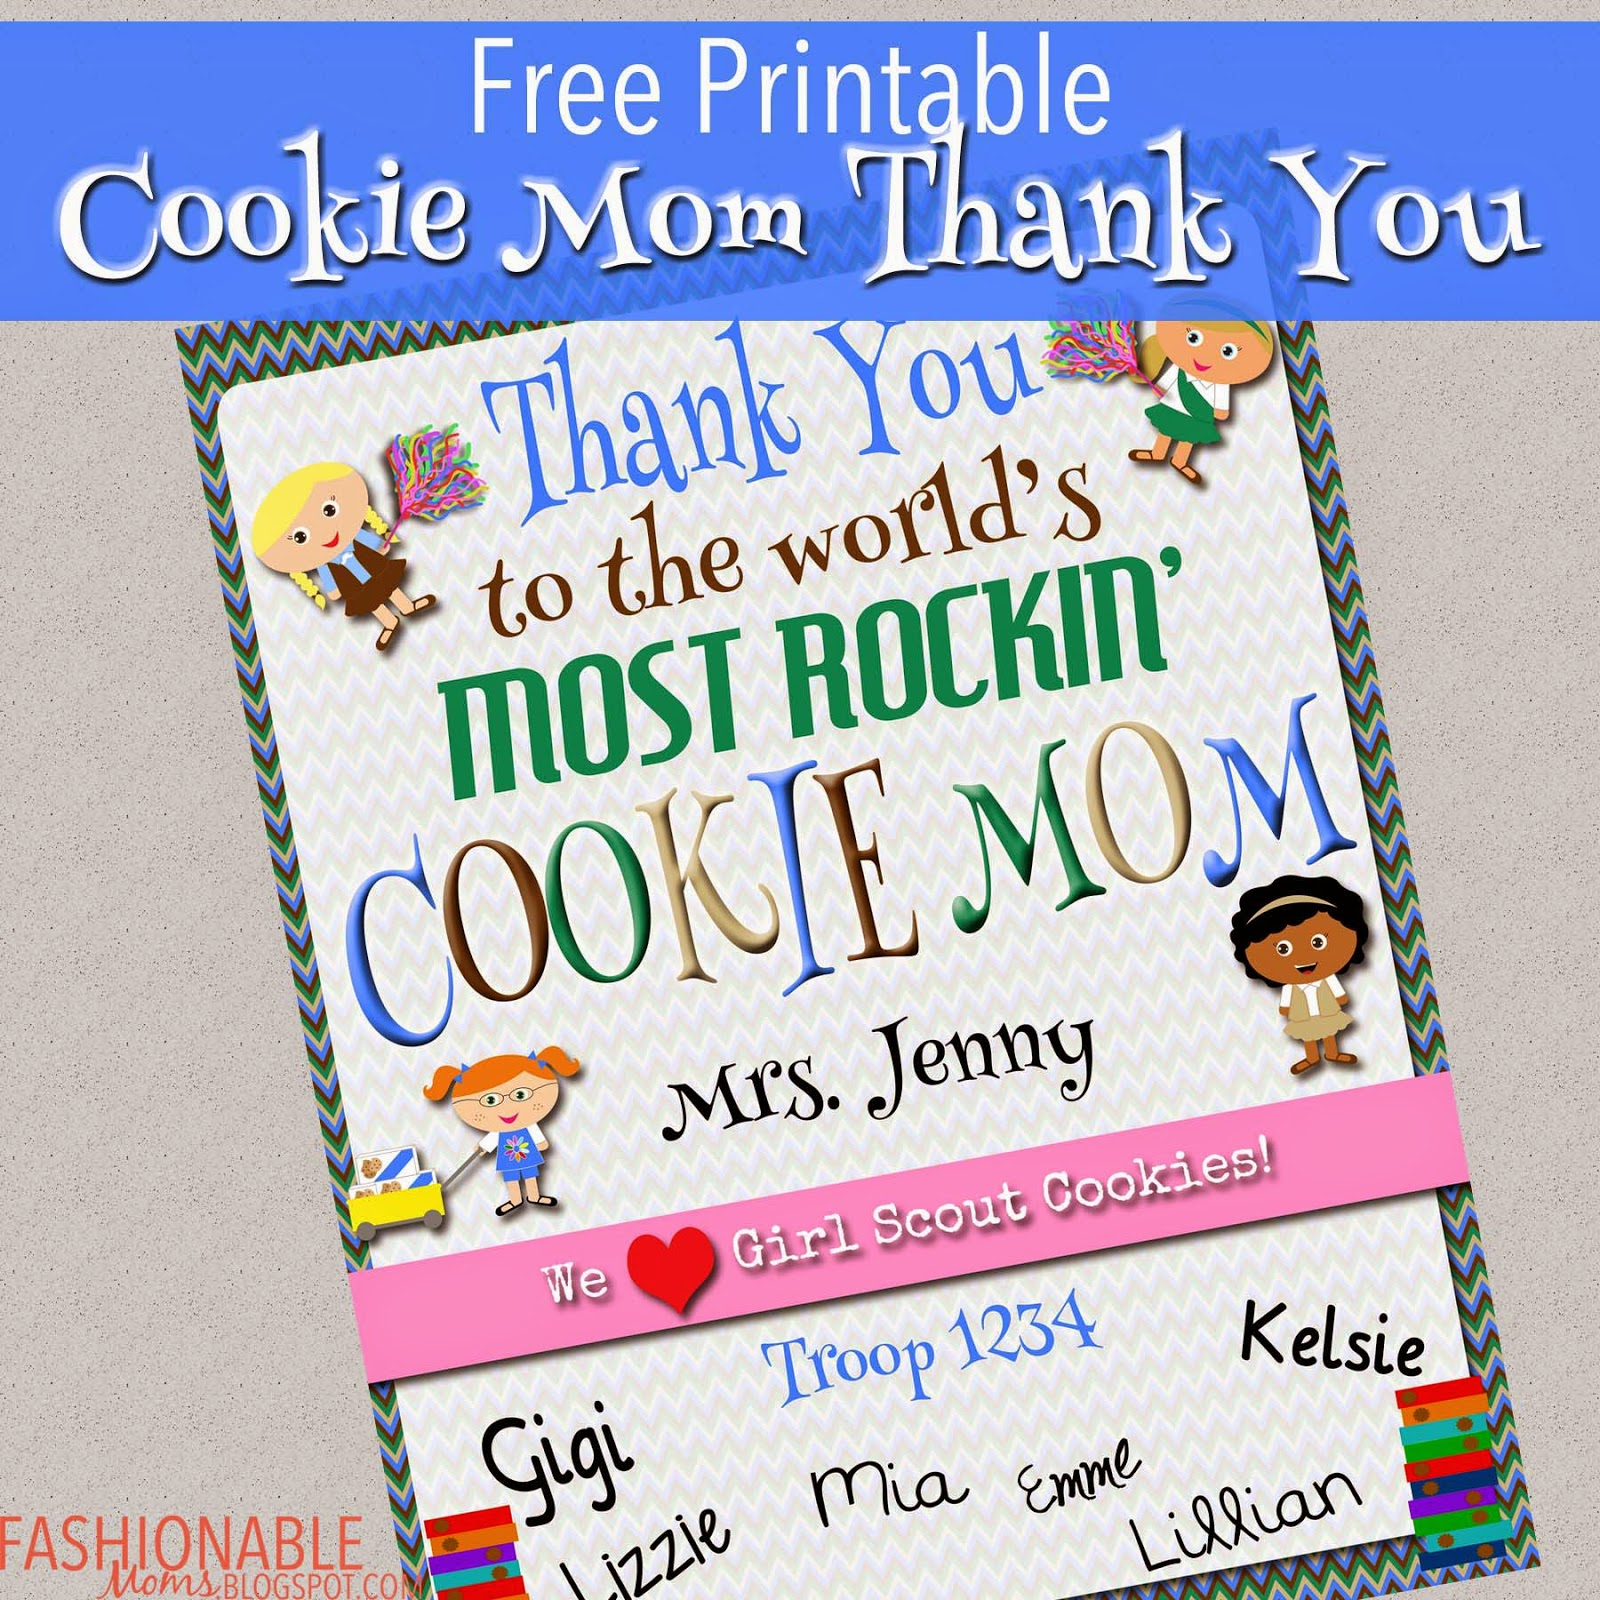 My Fashionable Designs Free Printable Cookie Mom Thank You Certificate